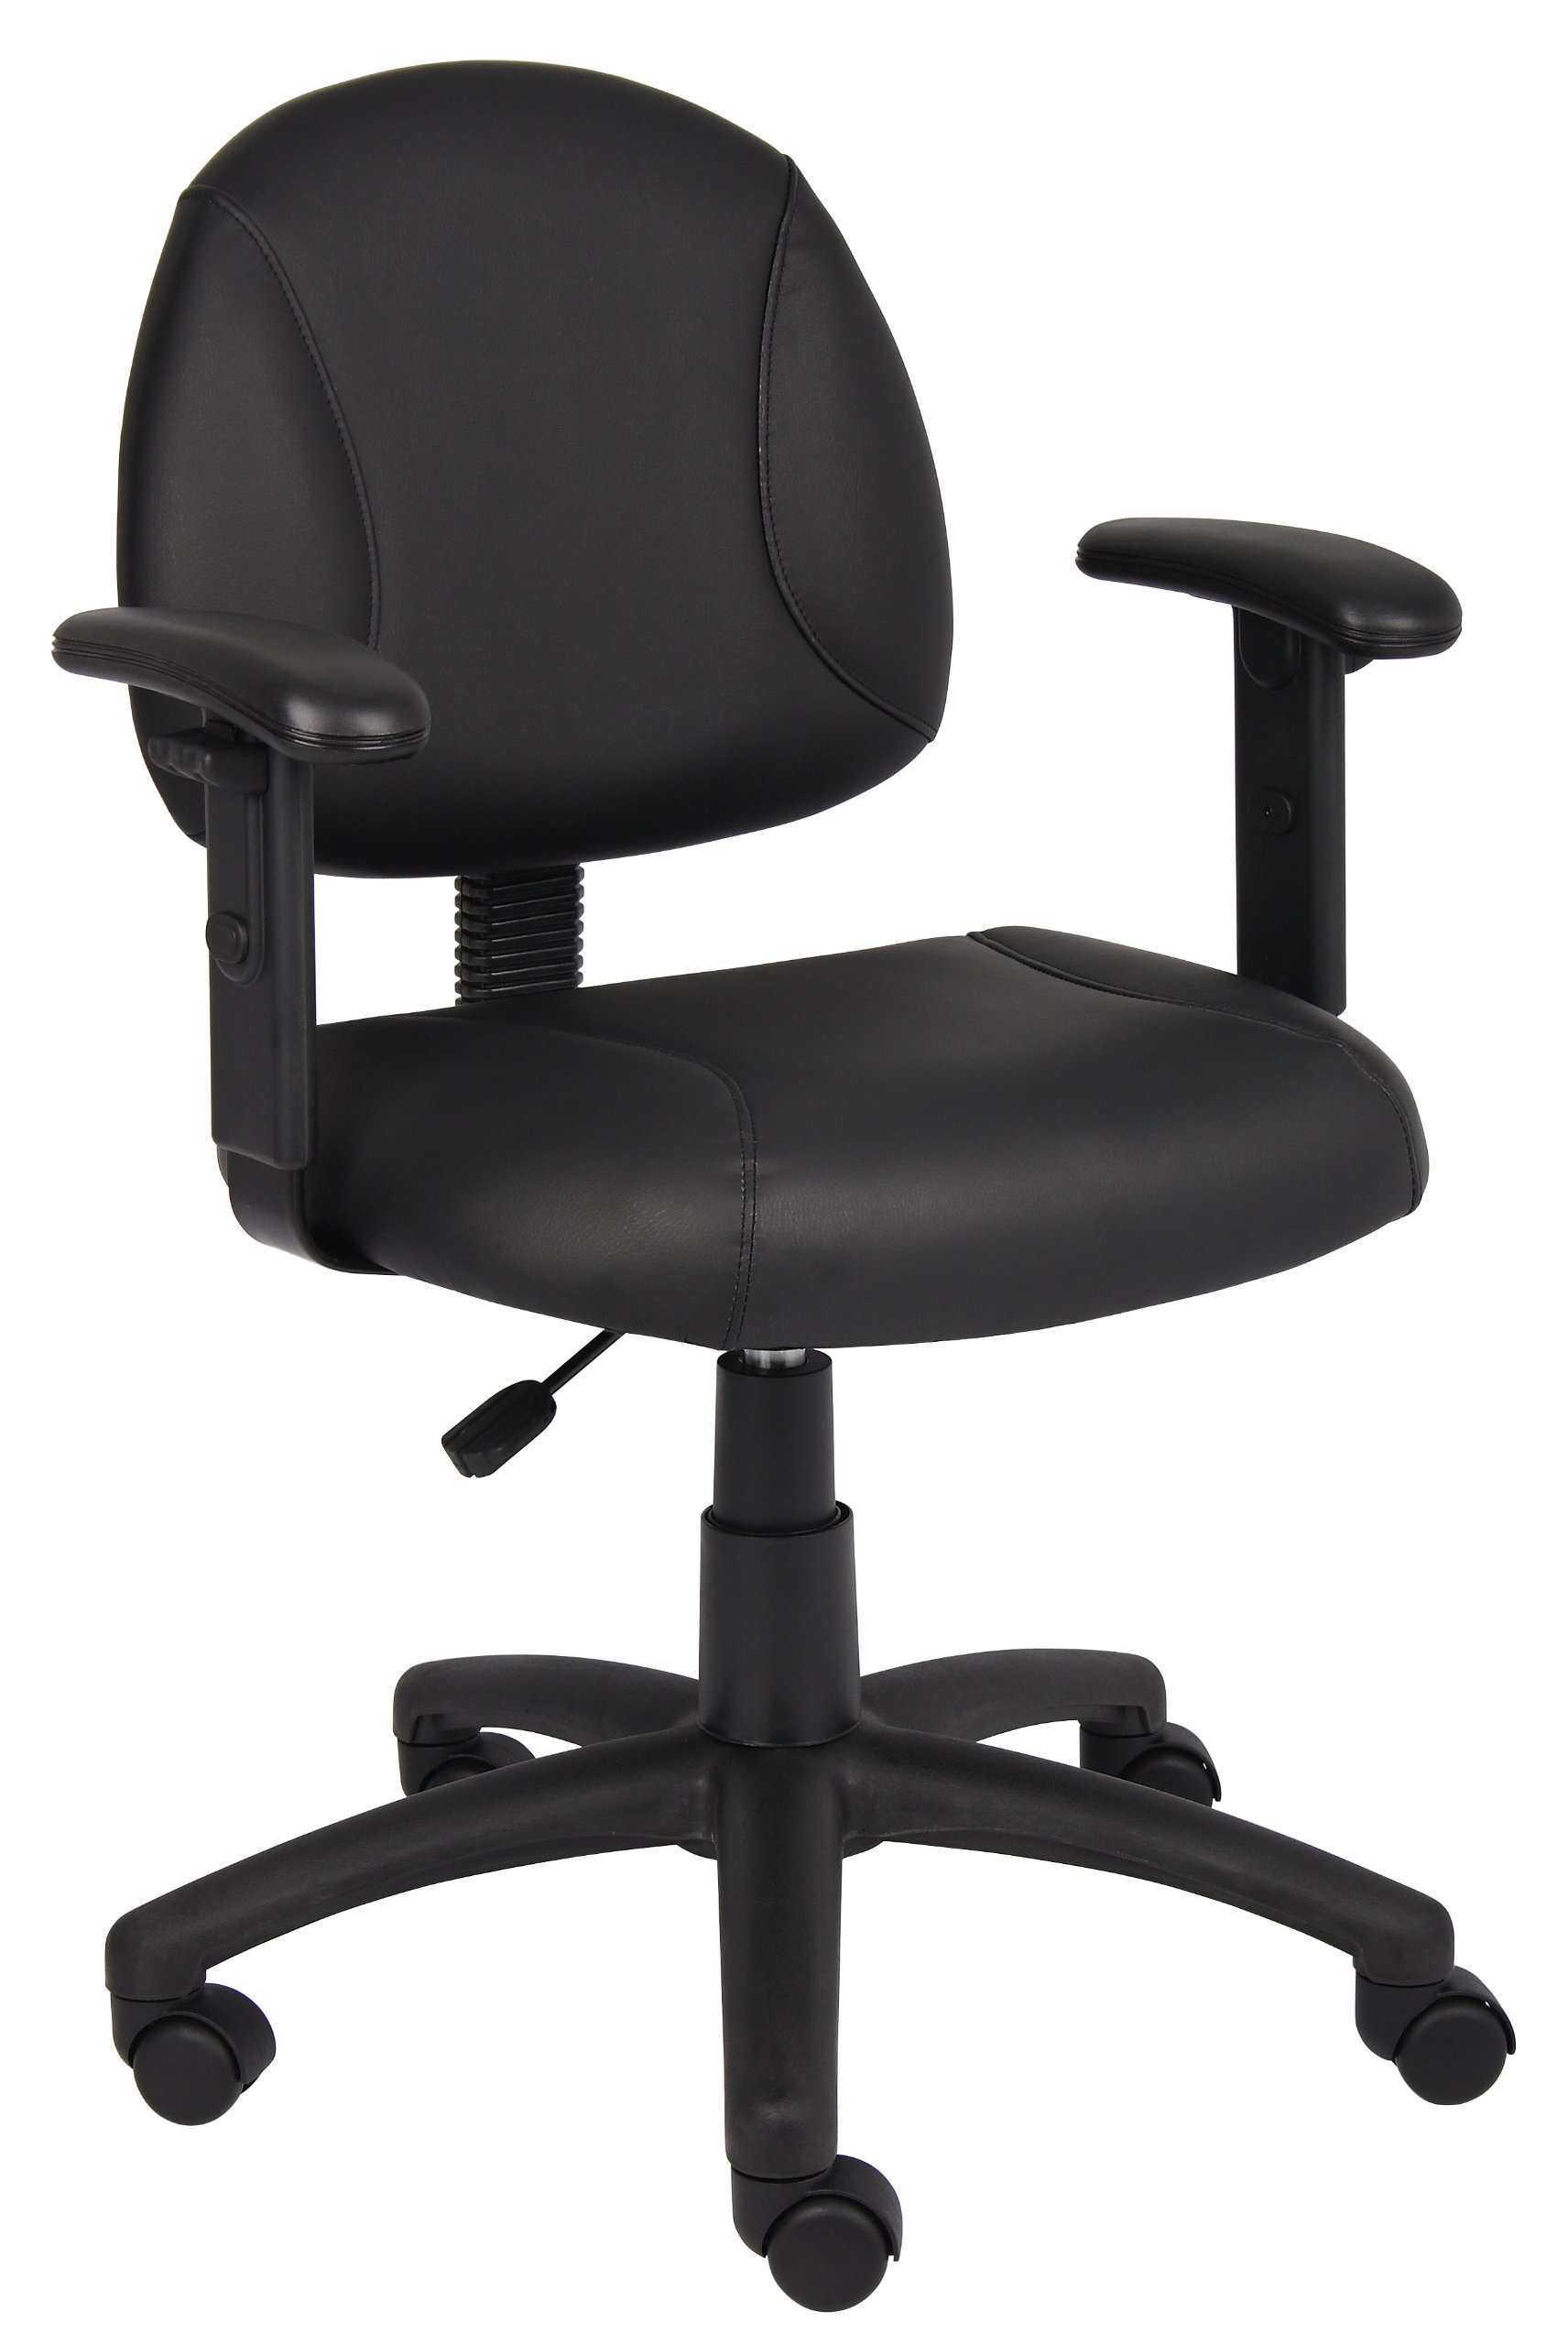 Boss Office Products B306 Posture Task Chair with Adjustable Arms in Black